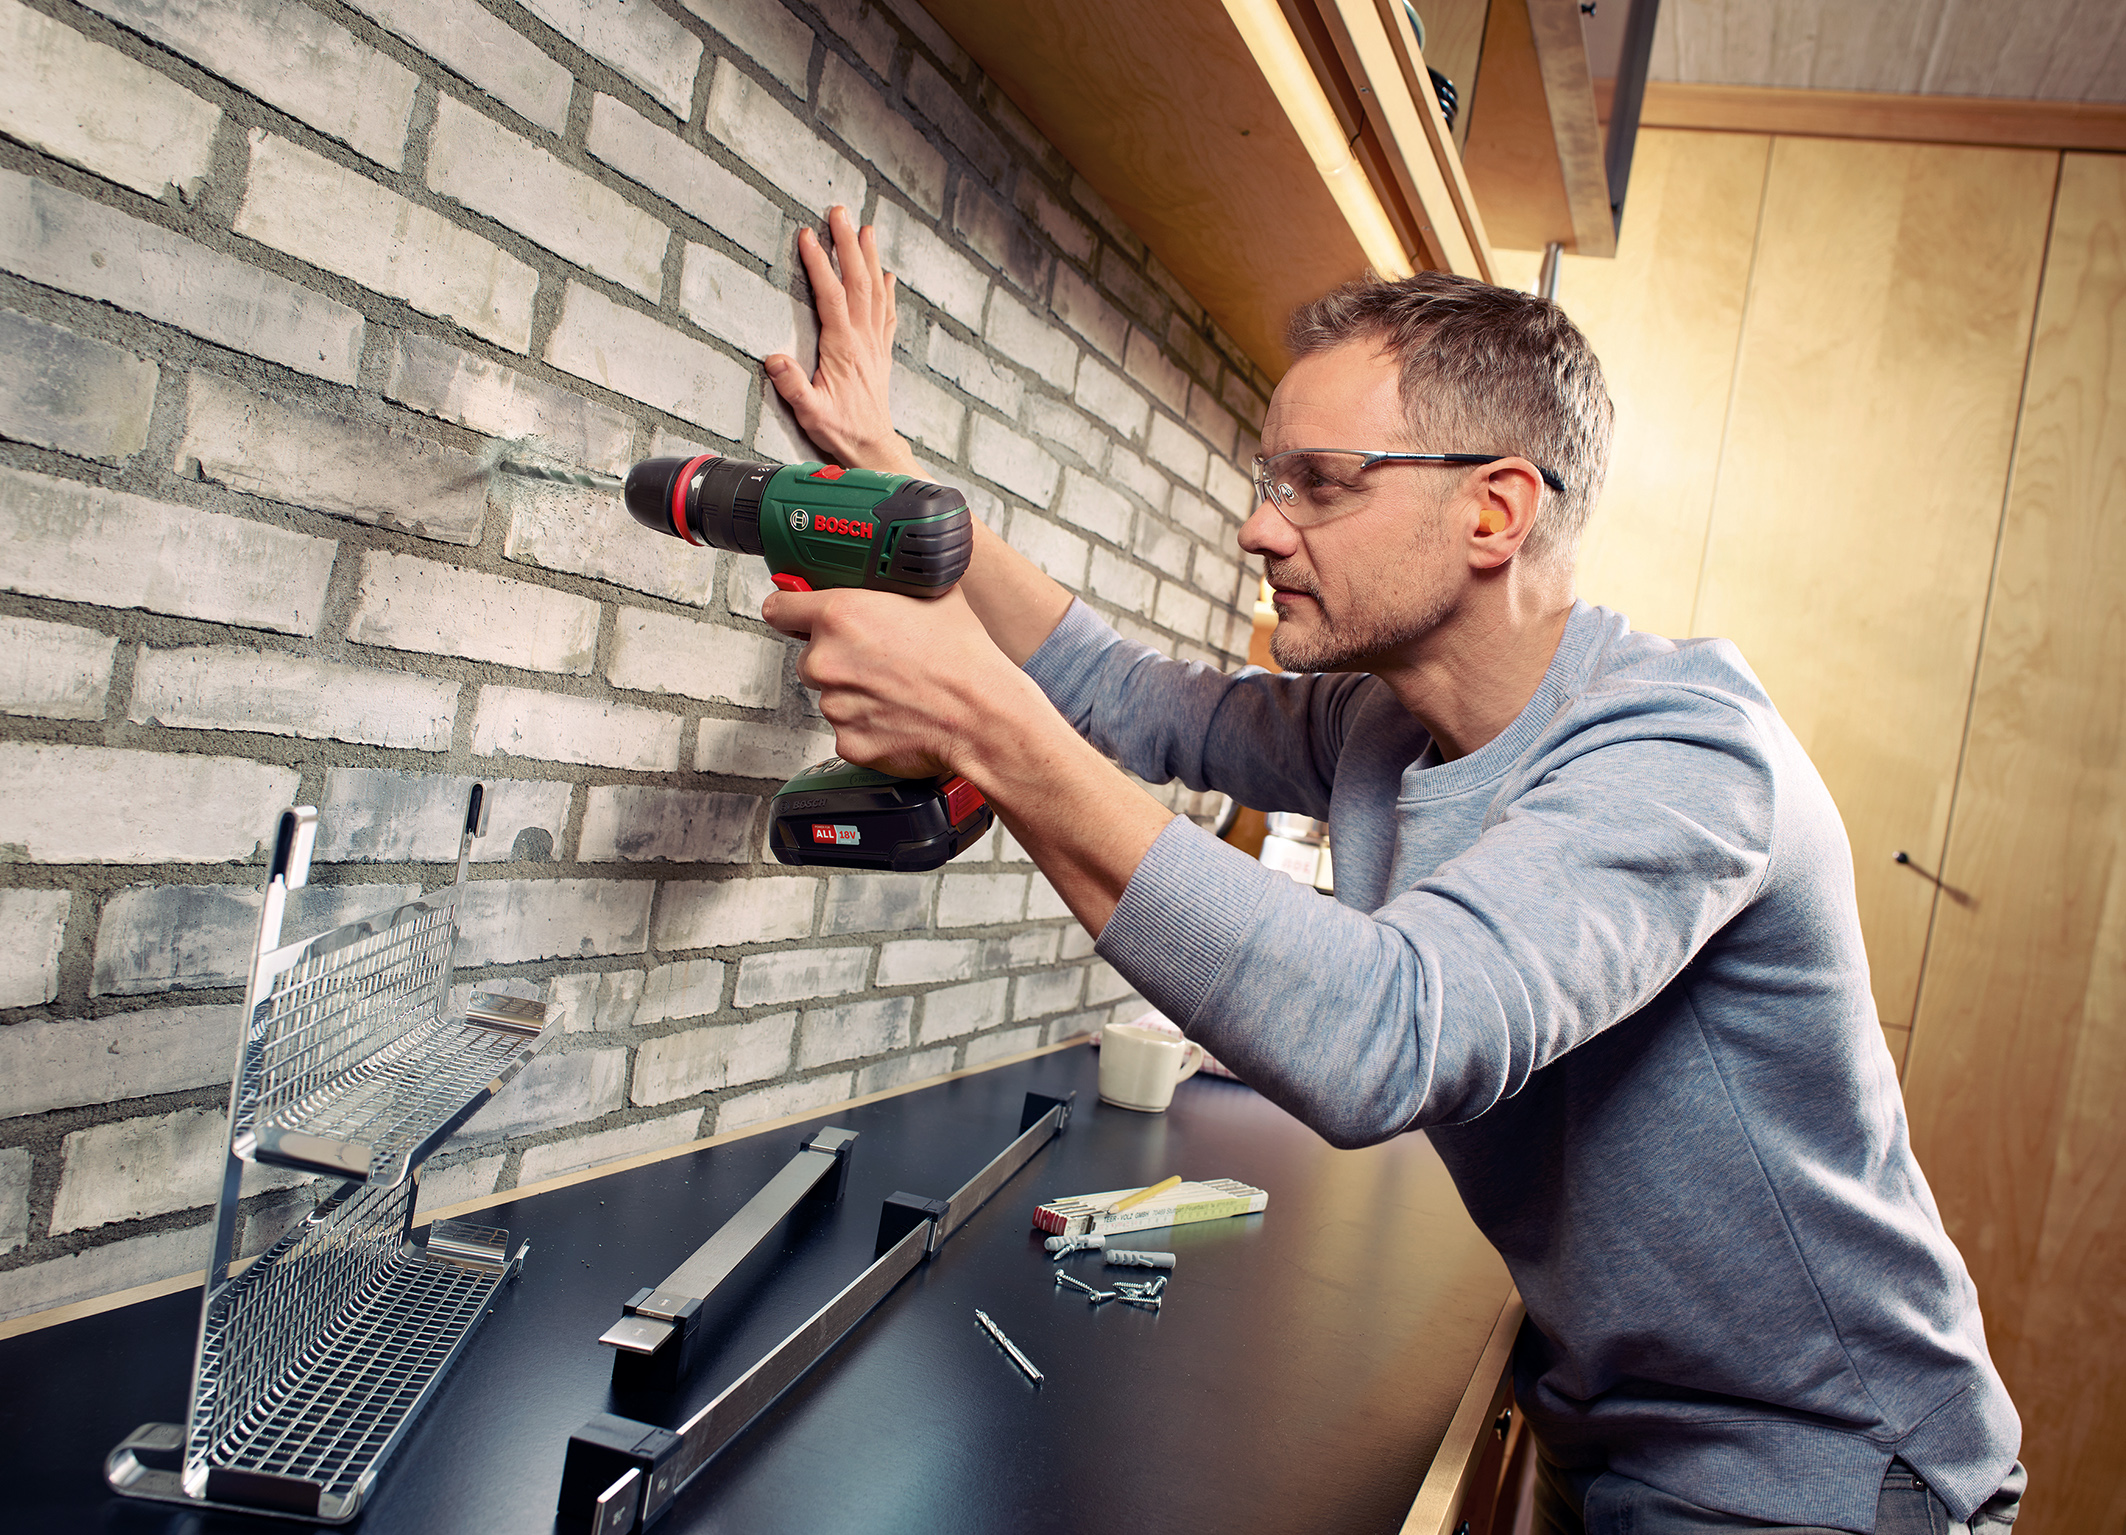 Cordless combi drill system for DIYers: Bosch AdvancedImpact 18 QuickSnap with drill chuck adapter